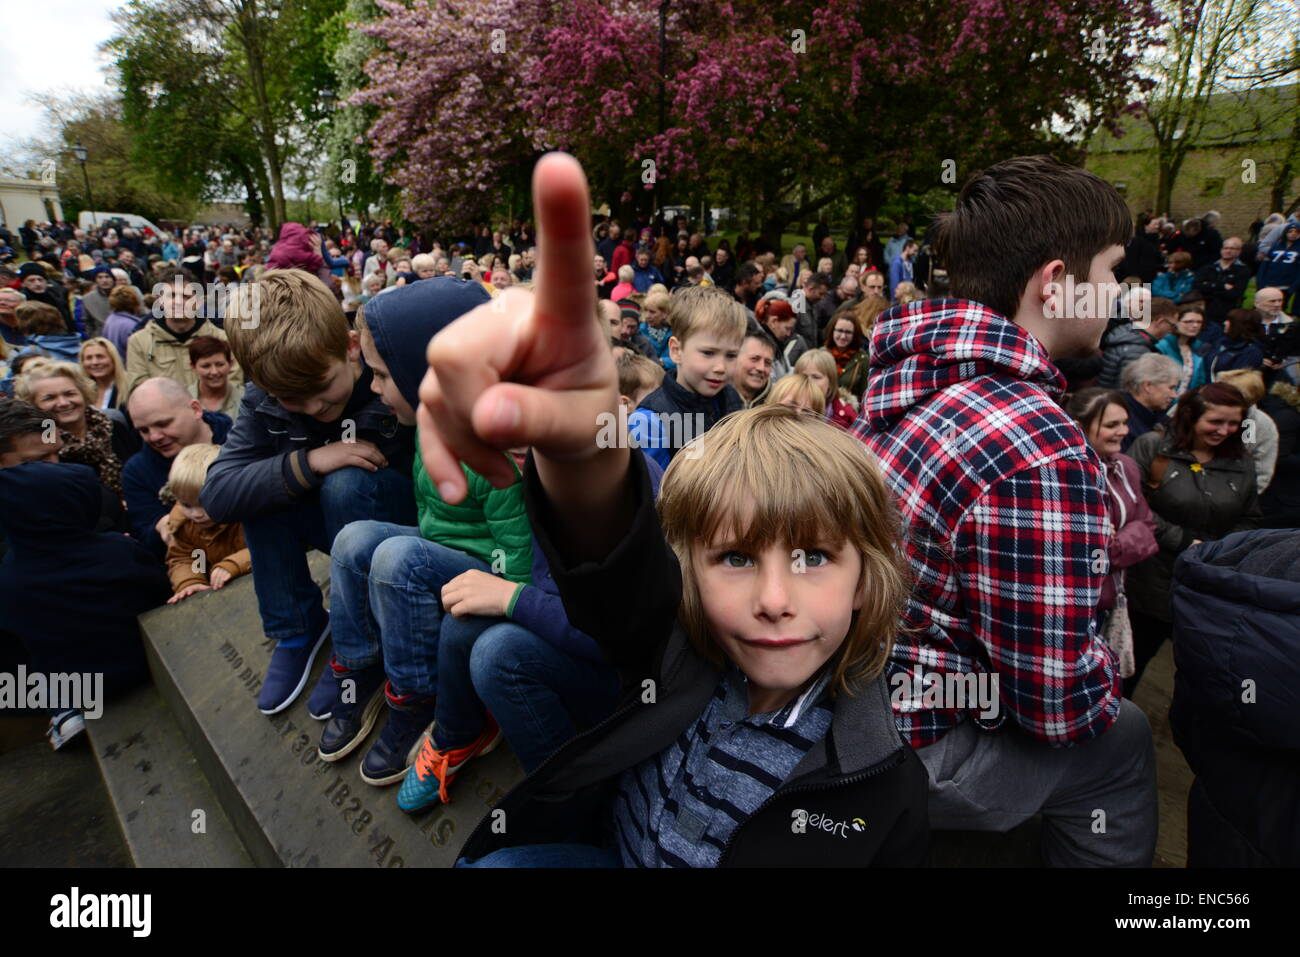 Rotherham, UK. 2nd May 2015. A young boy hoping to catch a piece of bread which is thrown from the church tower at Wath All Saints Parish Church near Rotherham, South Yorkshire. One hundred bread bun are thrown to the waiting crowds below as part of the annual Wath Festival. Picture: Scott Bairstow/Alamy Stock Photo